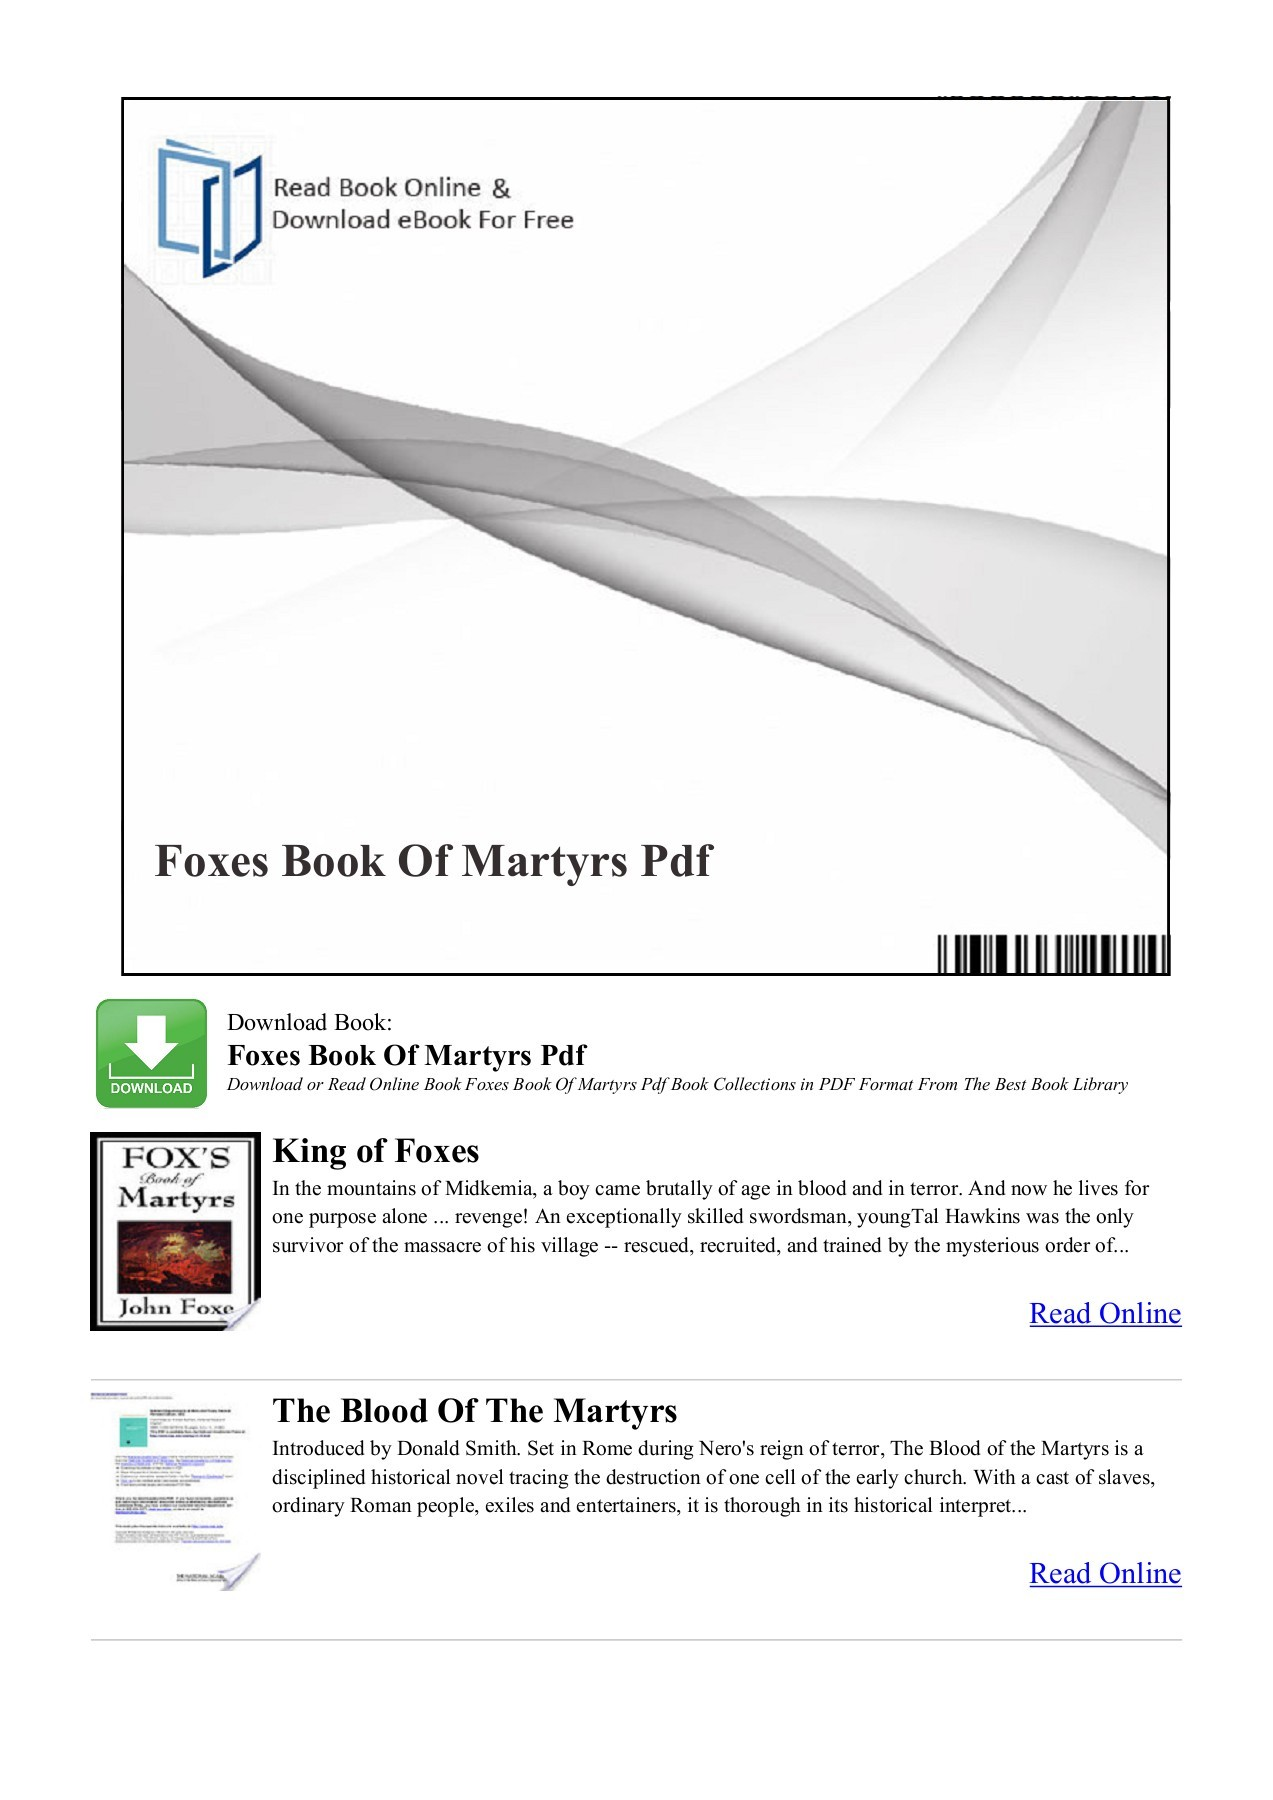 Read The Book Online Foxes Book Of Martyrs Pdf Jlebooks Pages 1 4 Text Version